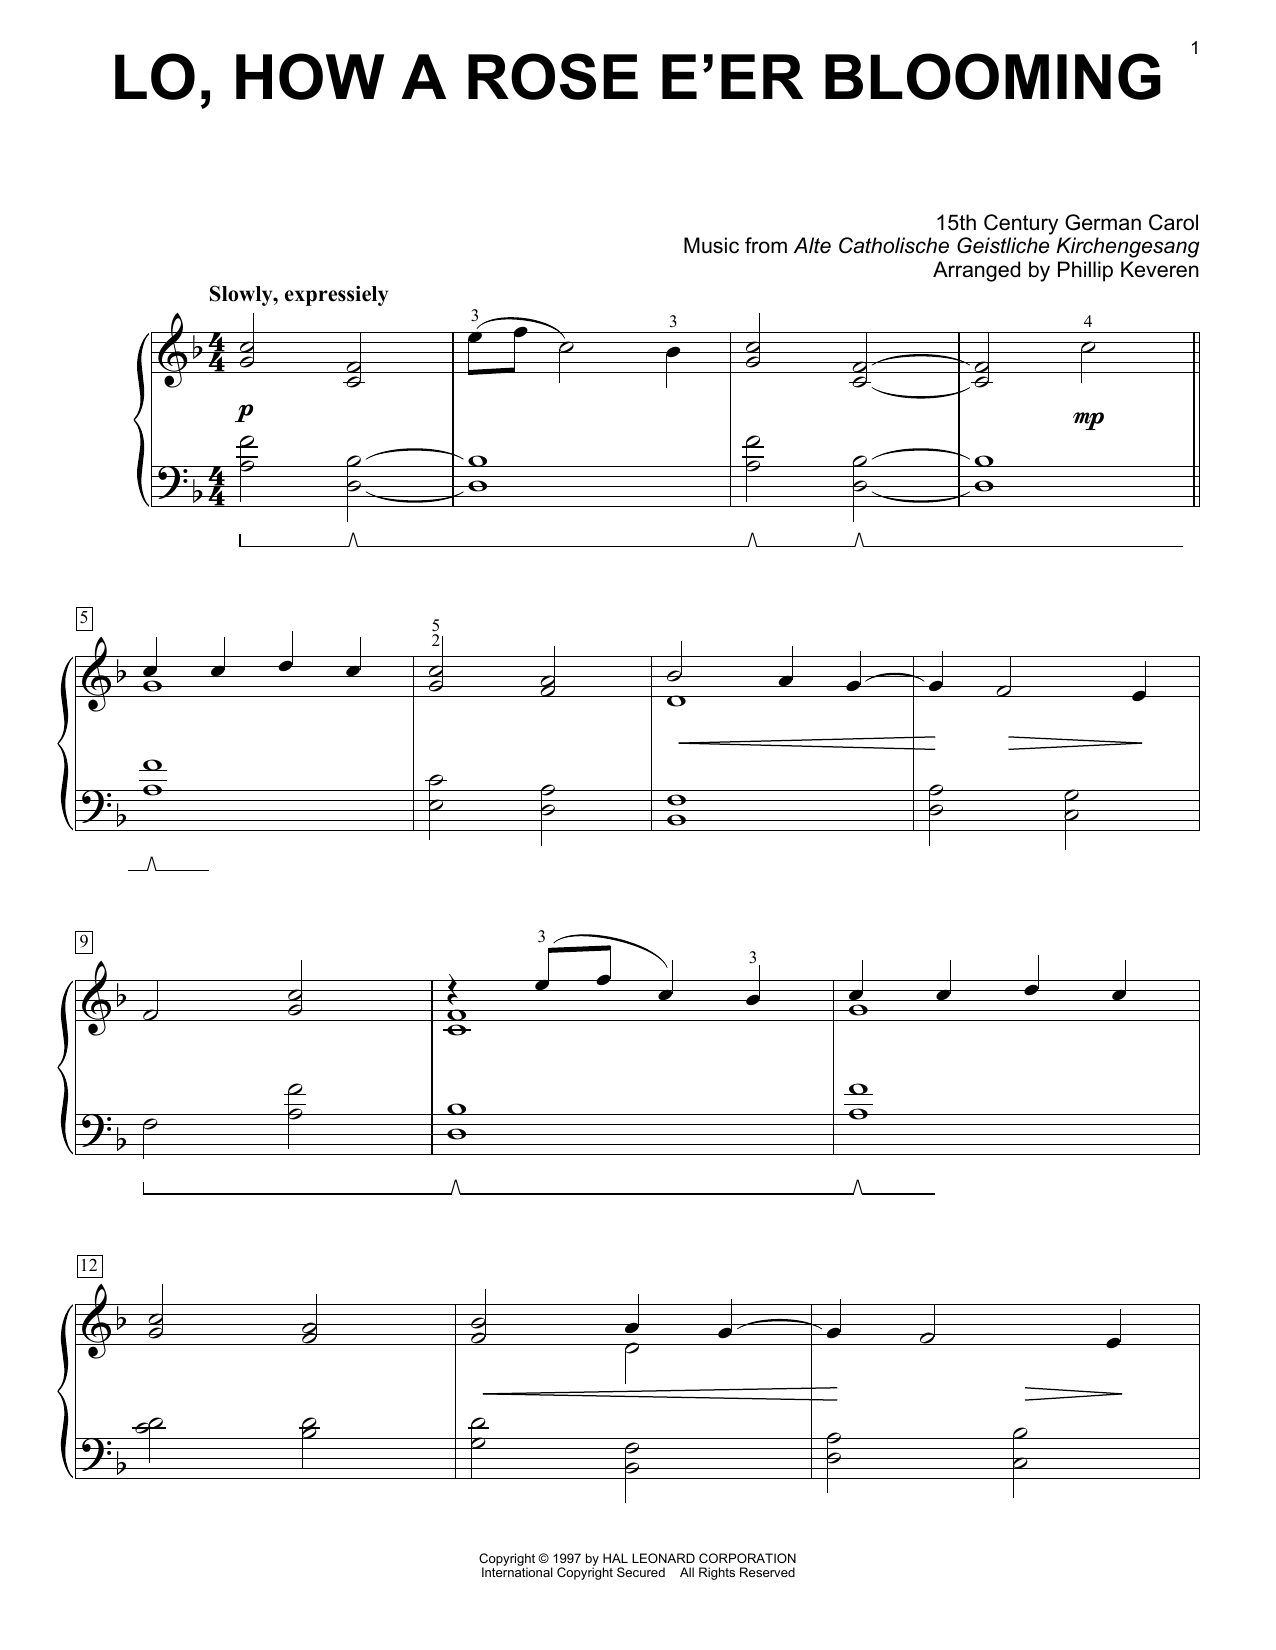 15th Century German Carol Lo, How A Rose E'er Blooming (arr. Phillip Keveren) sheet music notes and chords. Download Printable PDF.